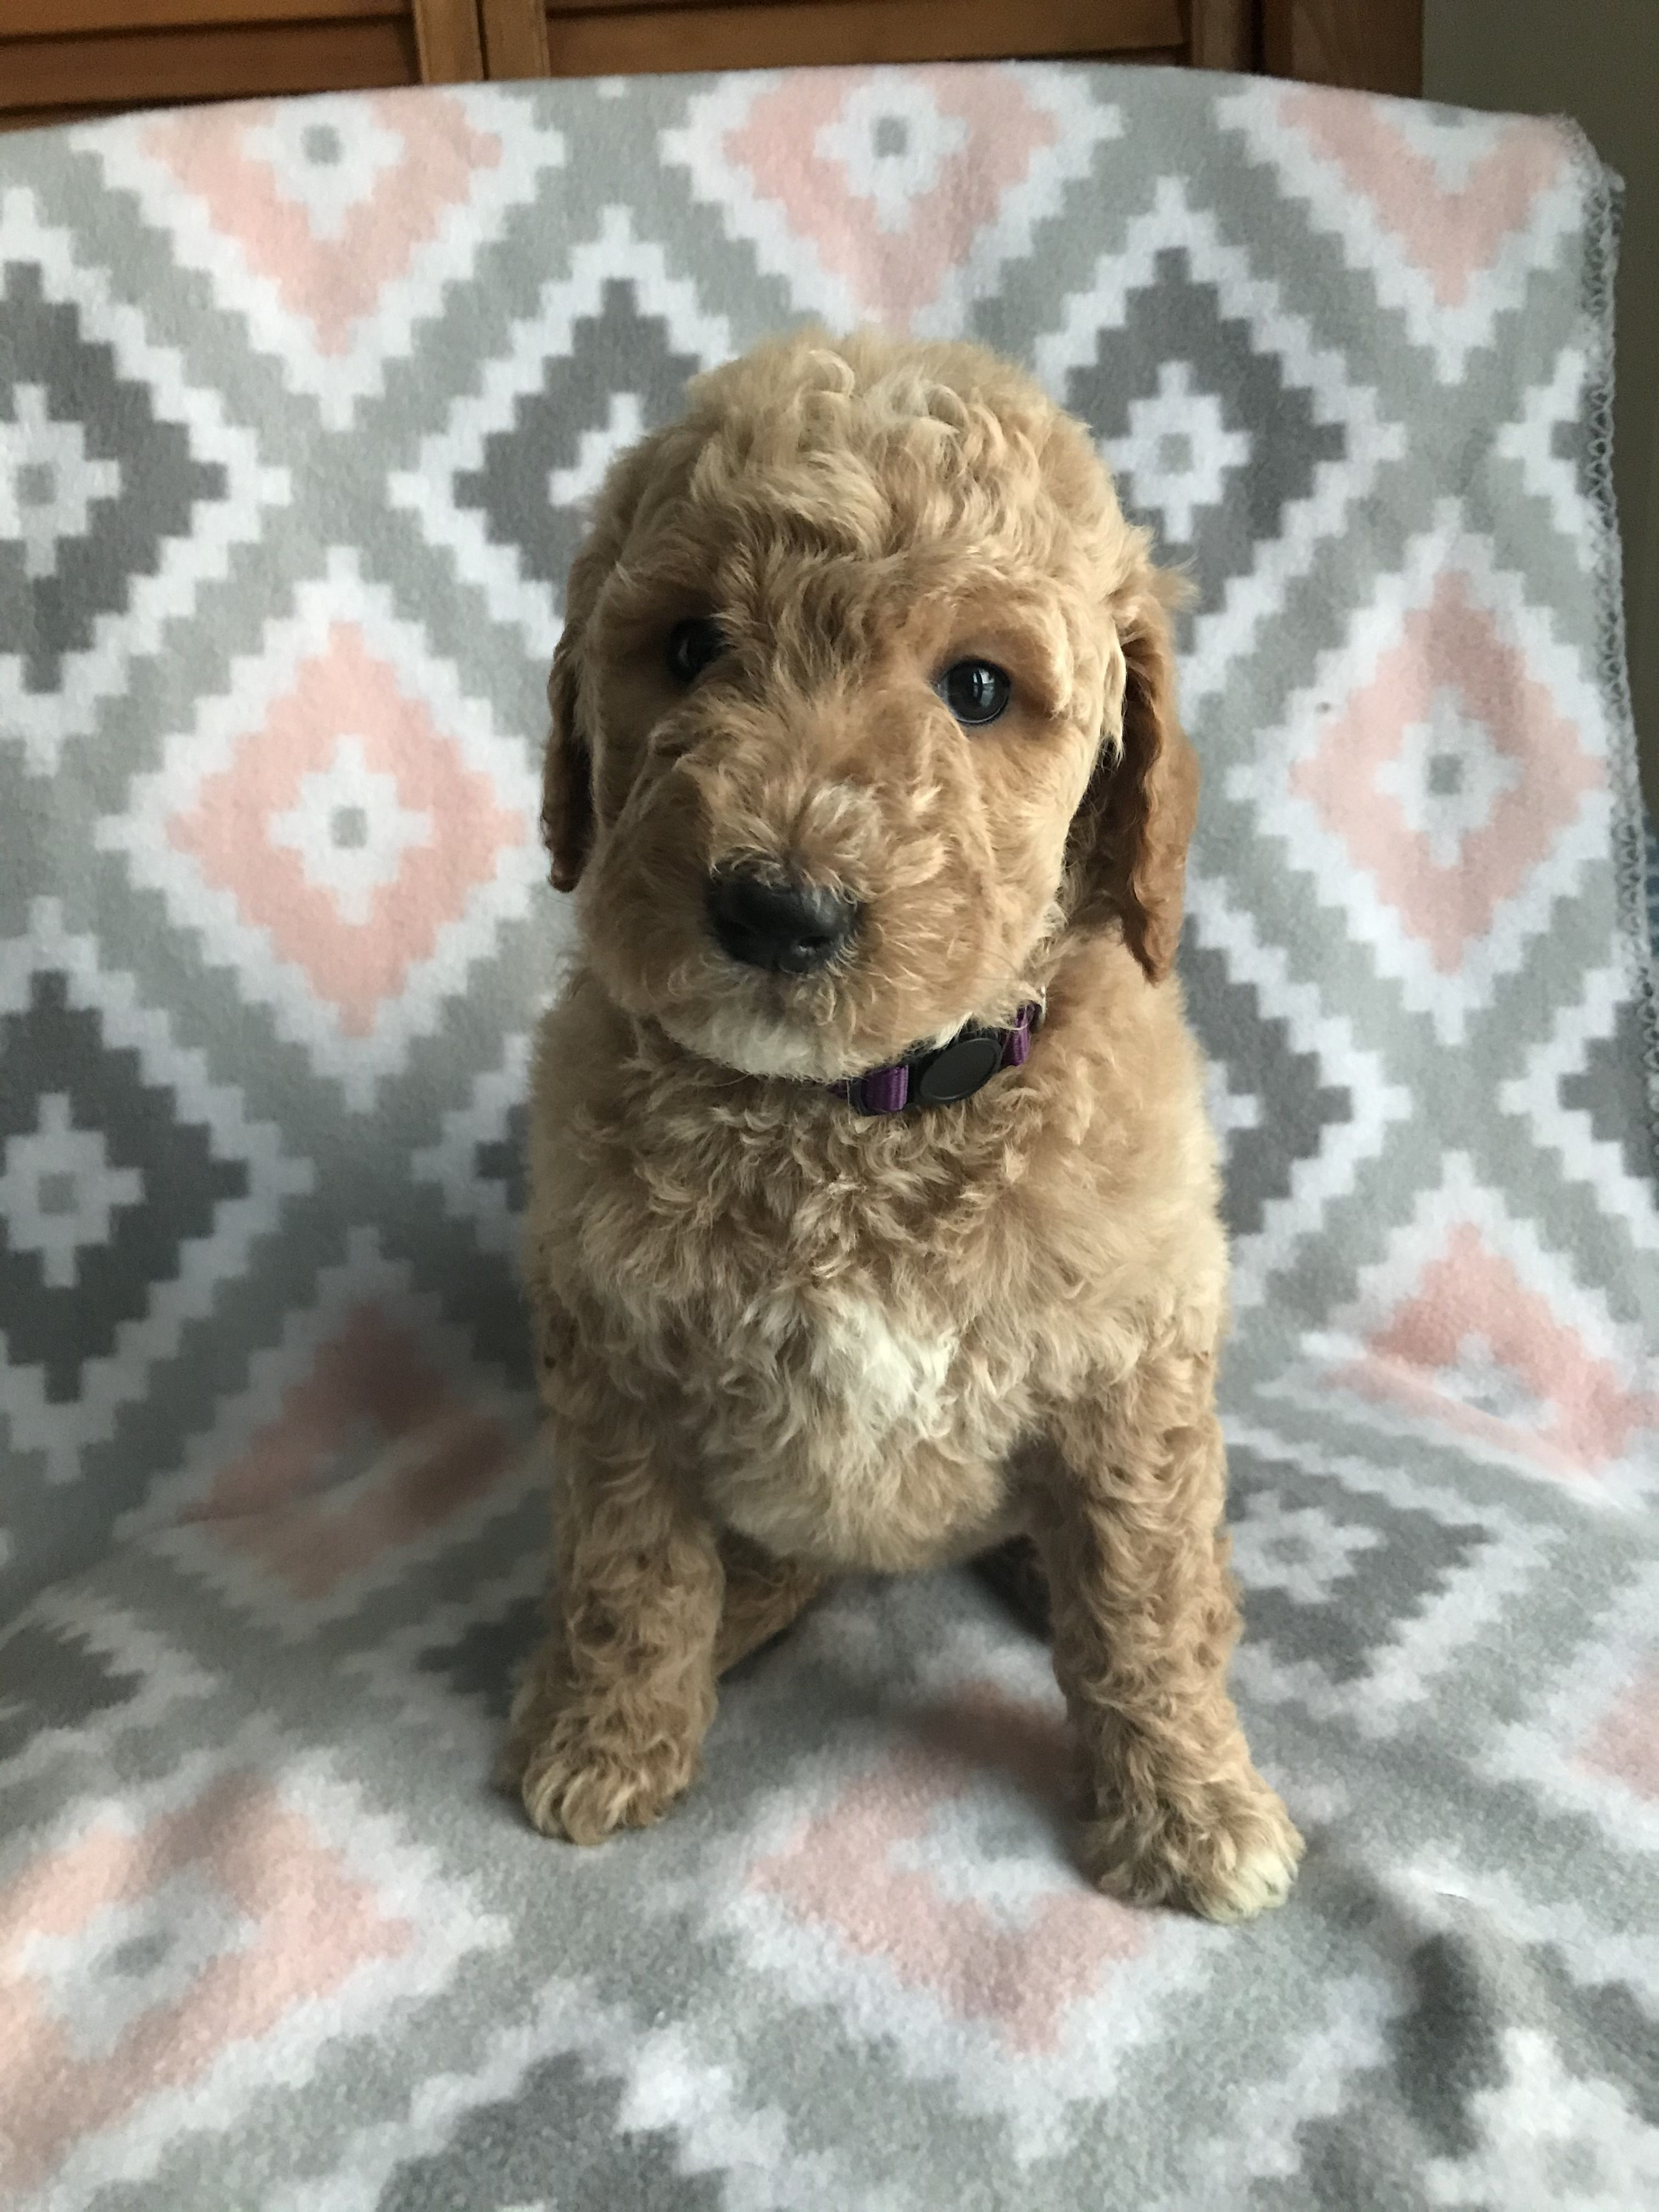 We have available F1B goldendoodle puppies, ready to go